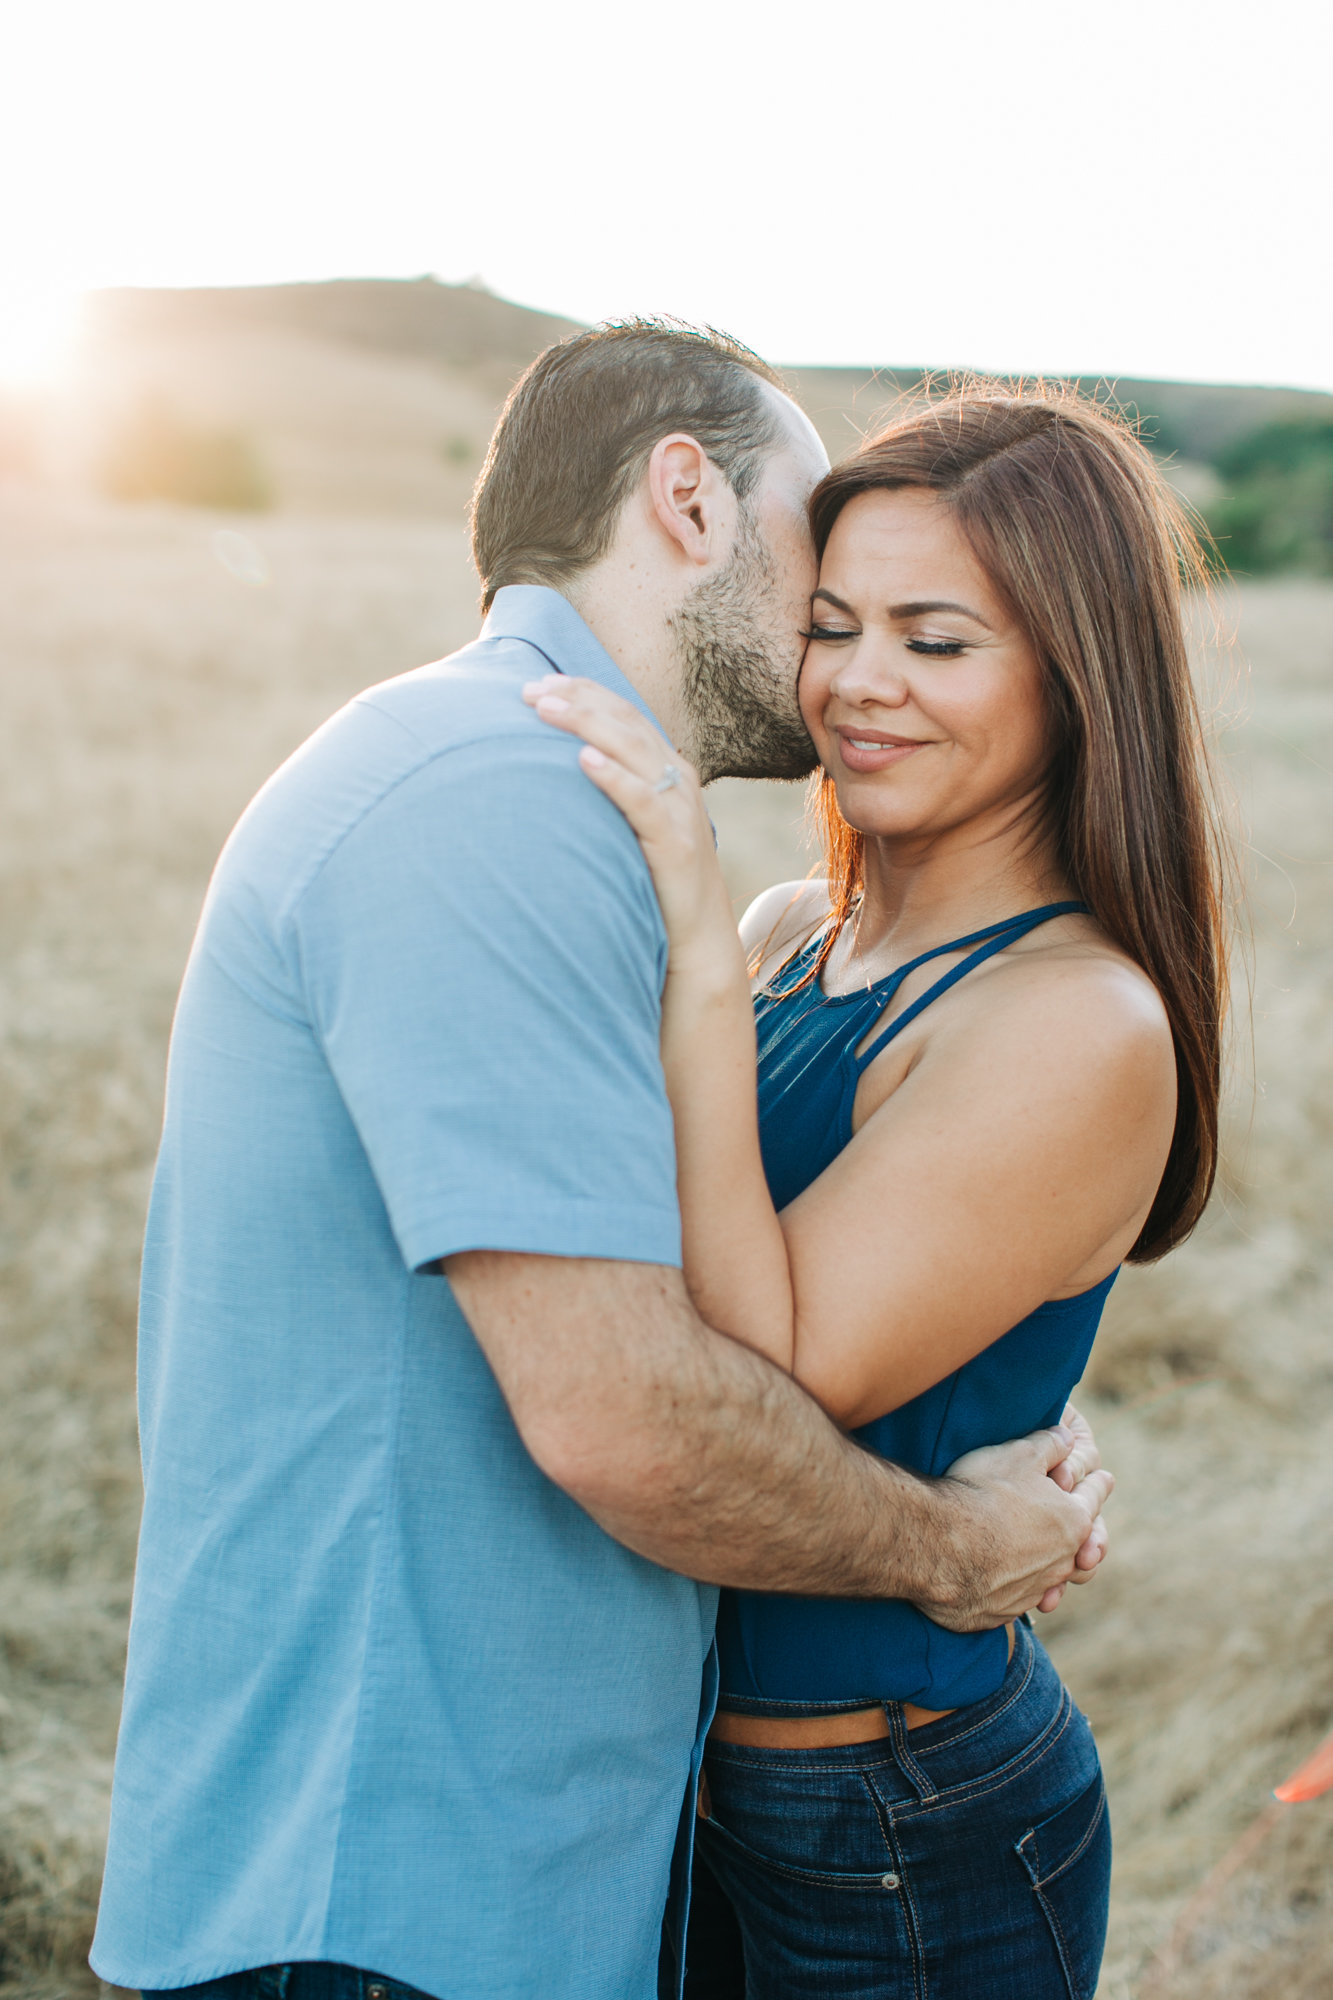 San_Juan_Capistrano_Engagement_Session_Lily_Ro_Photography-6785